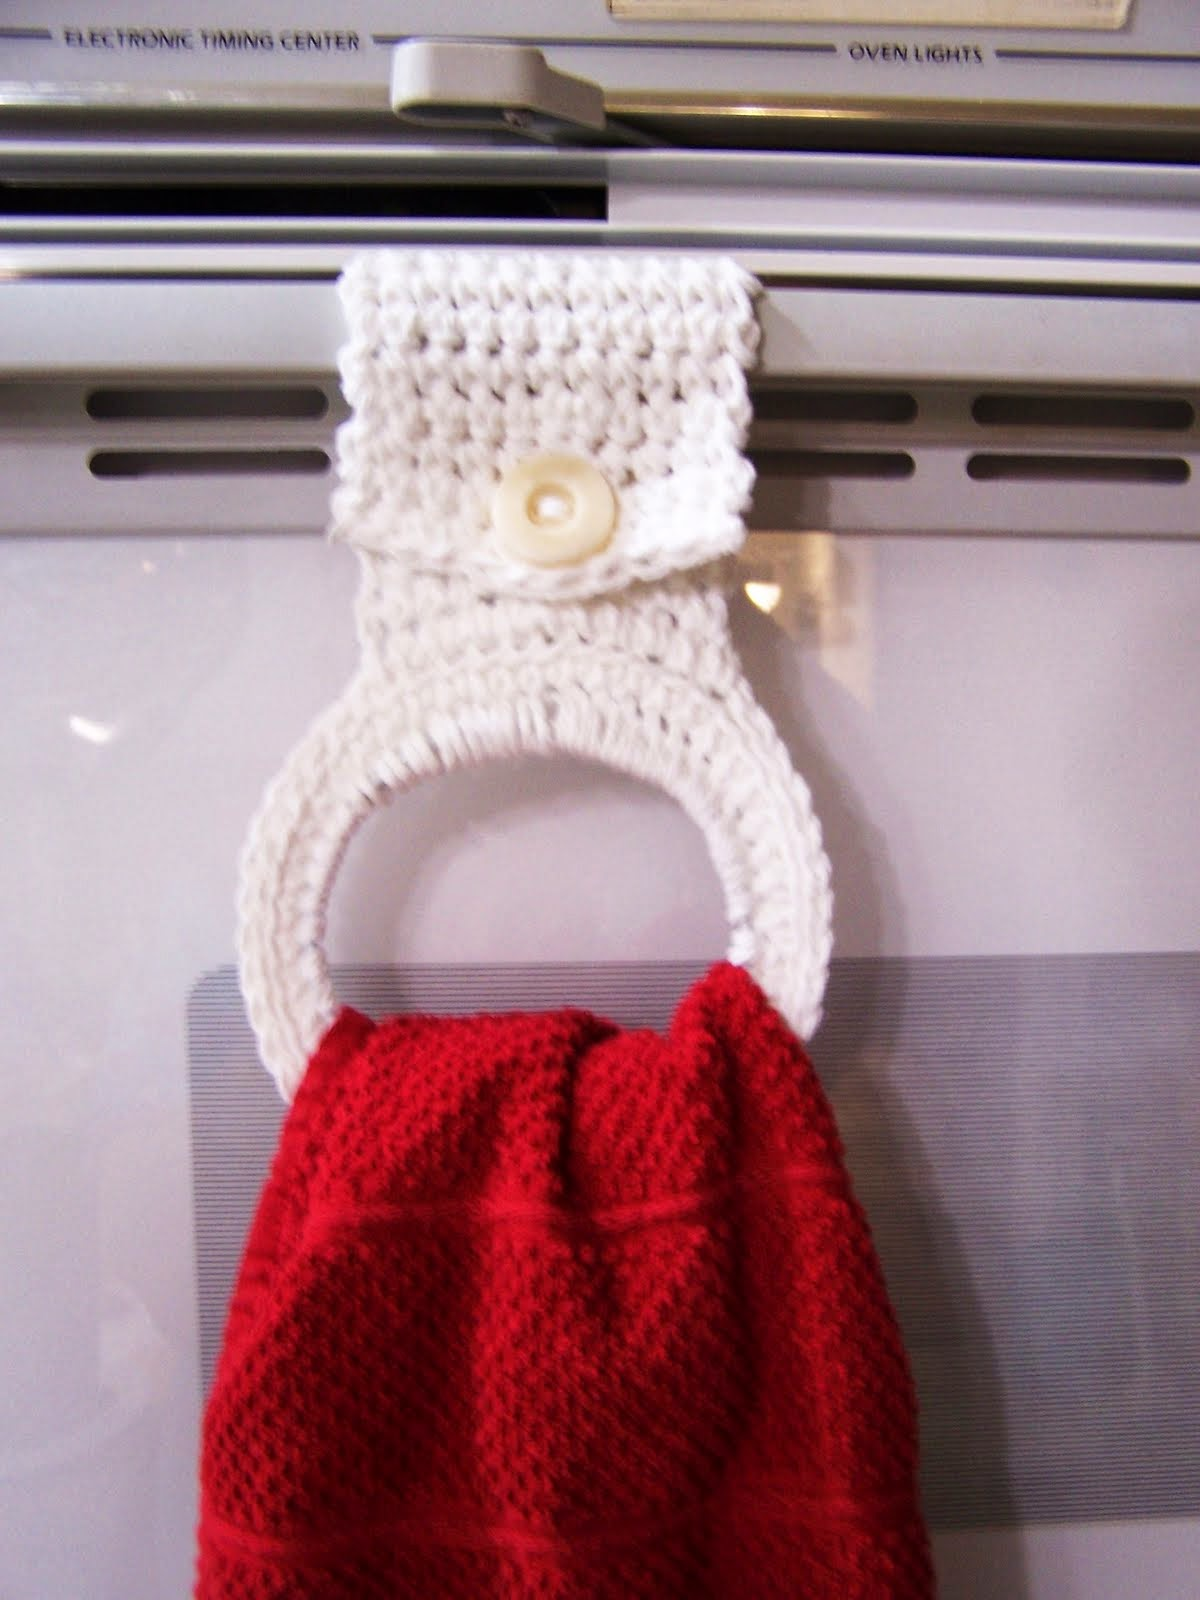 Free Crochet Pattern Kitchen Towel : FREE CROCHET DISH TOWEL PATTERN - Crochet and Knitting ...